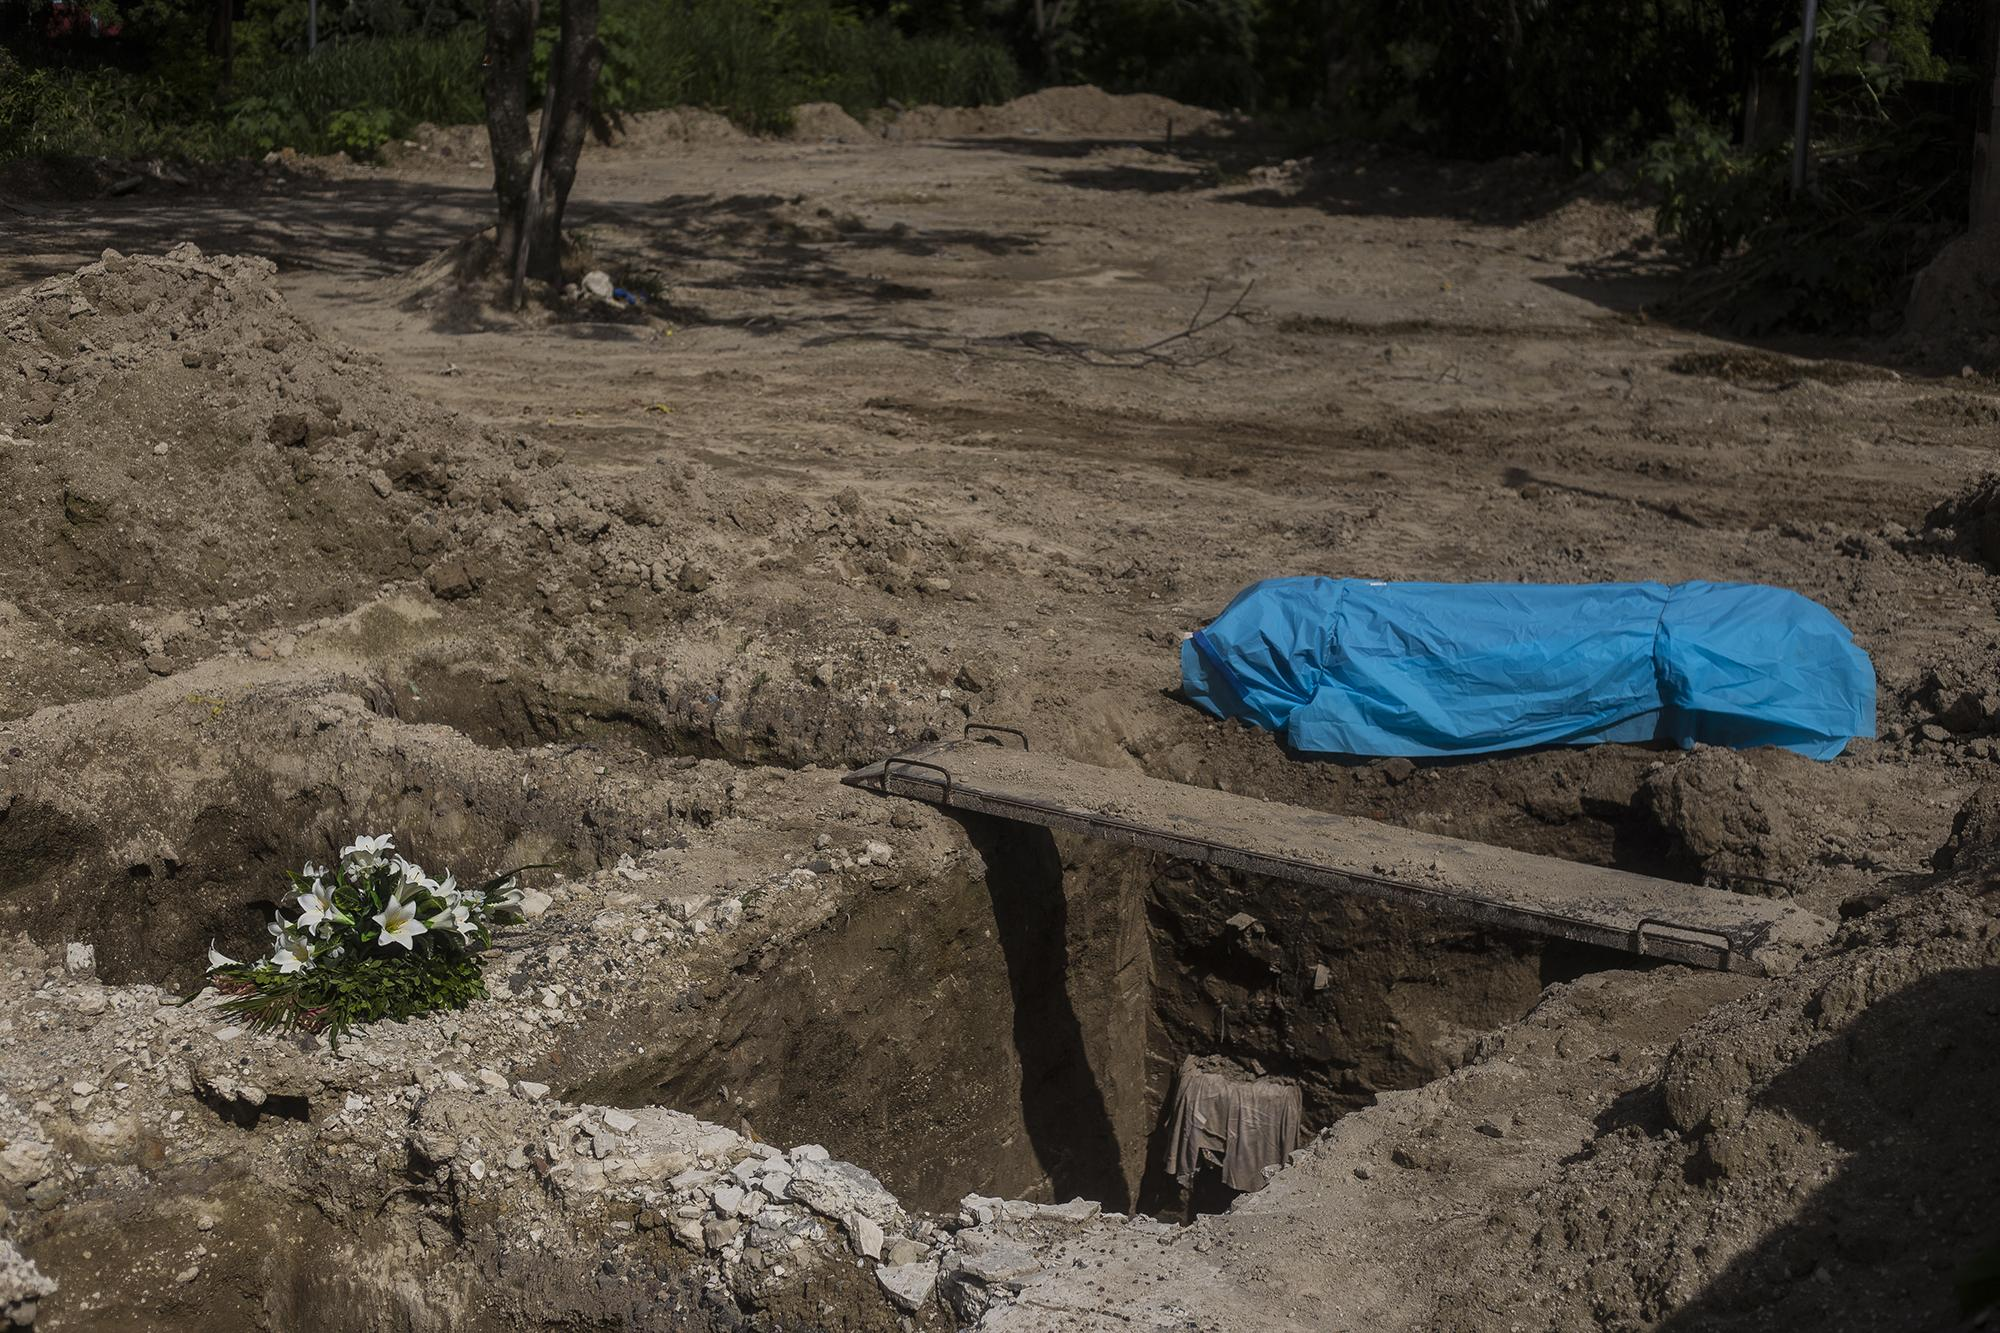 A body awaits its burial under covid-19 protocols in the La Bermeja cemetery in San Salvador. The Ministry of Health has reported a total of 600 burials of suspected or confirmed covid-19 victims since June 19. The hospital network has collapsed, according to patients and medical staff, and some cemeteries in the Metropolitan Area of San Salvador, like Ilopango, are full.